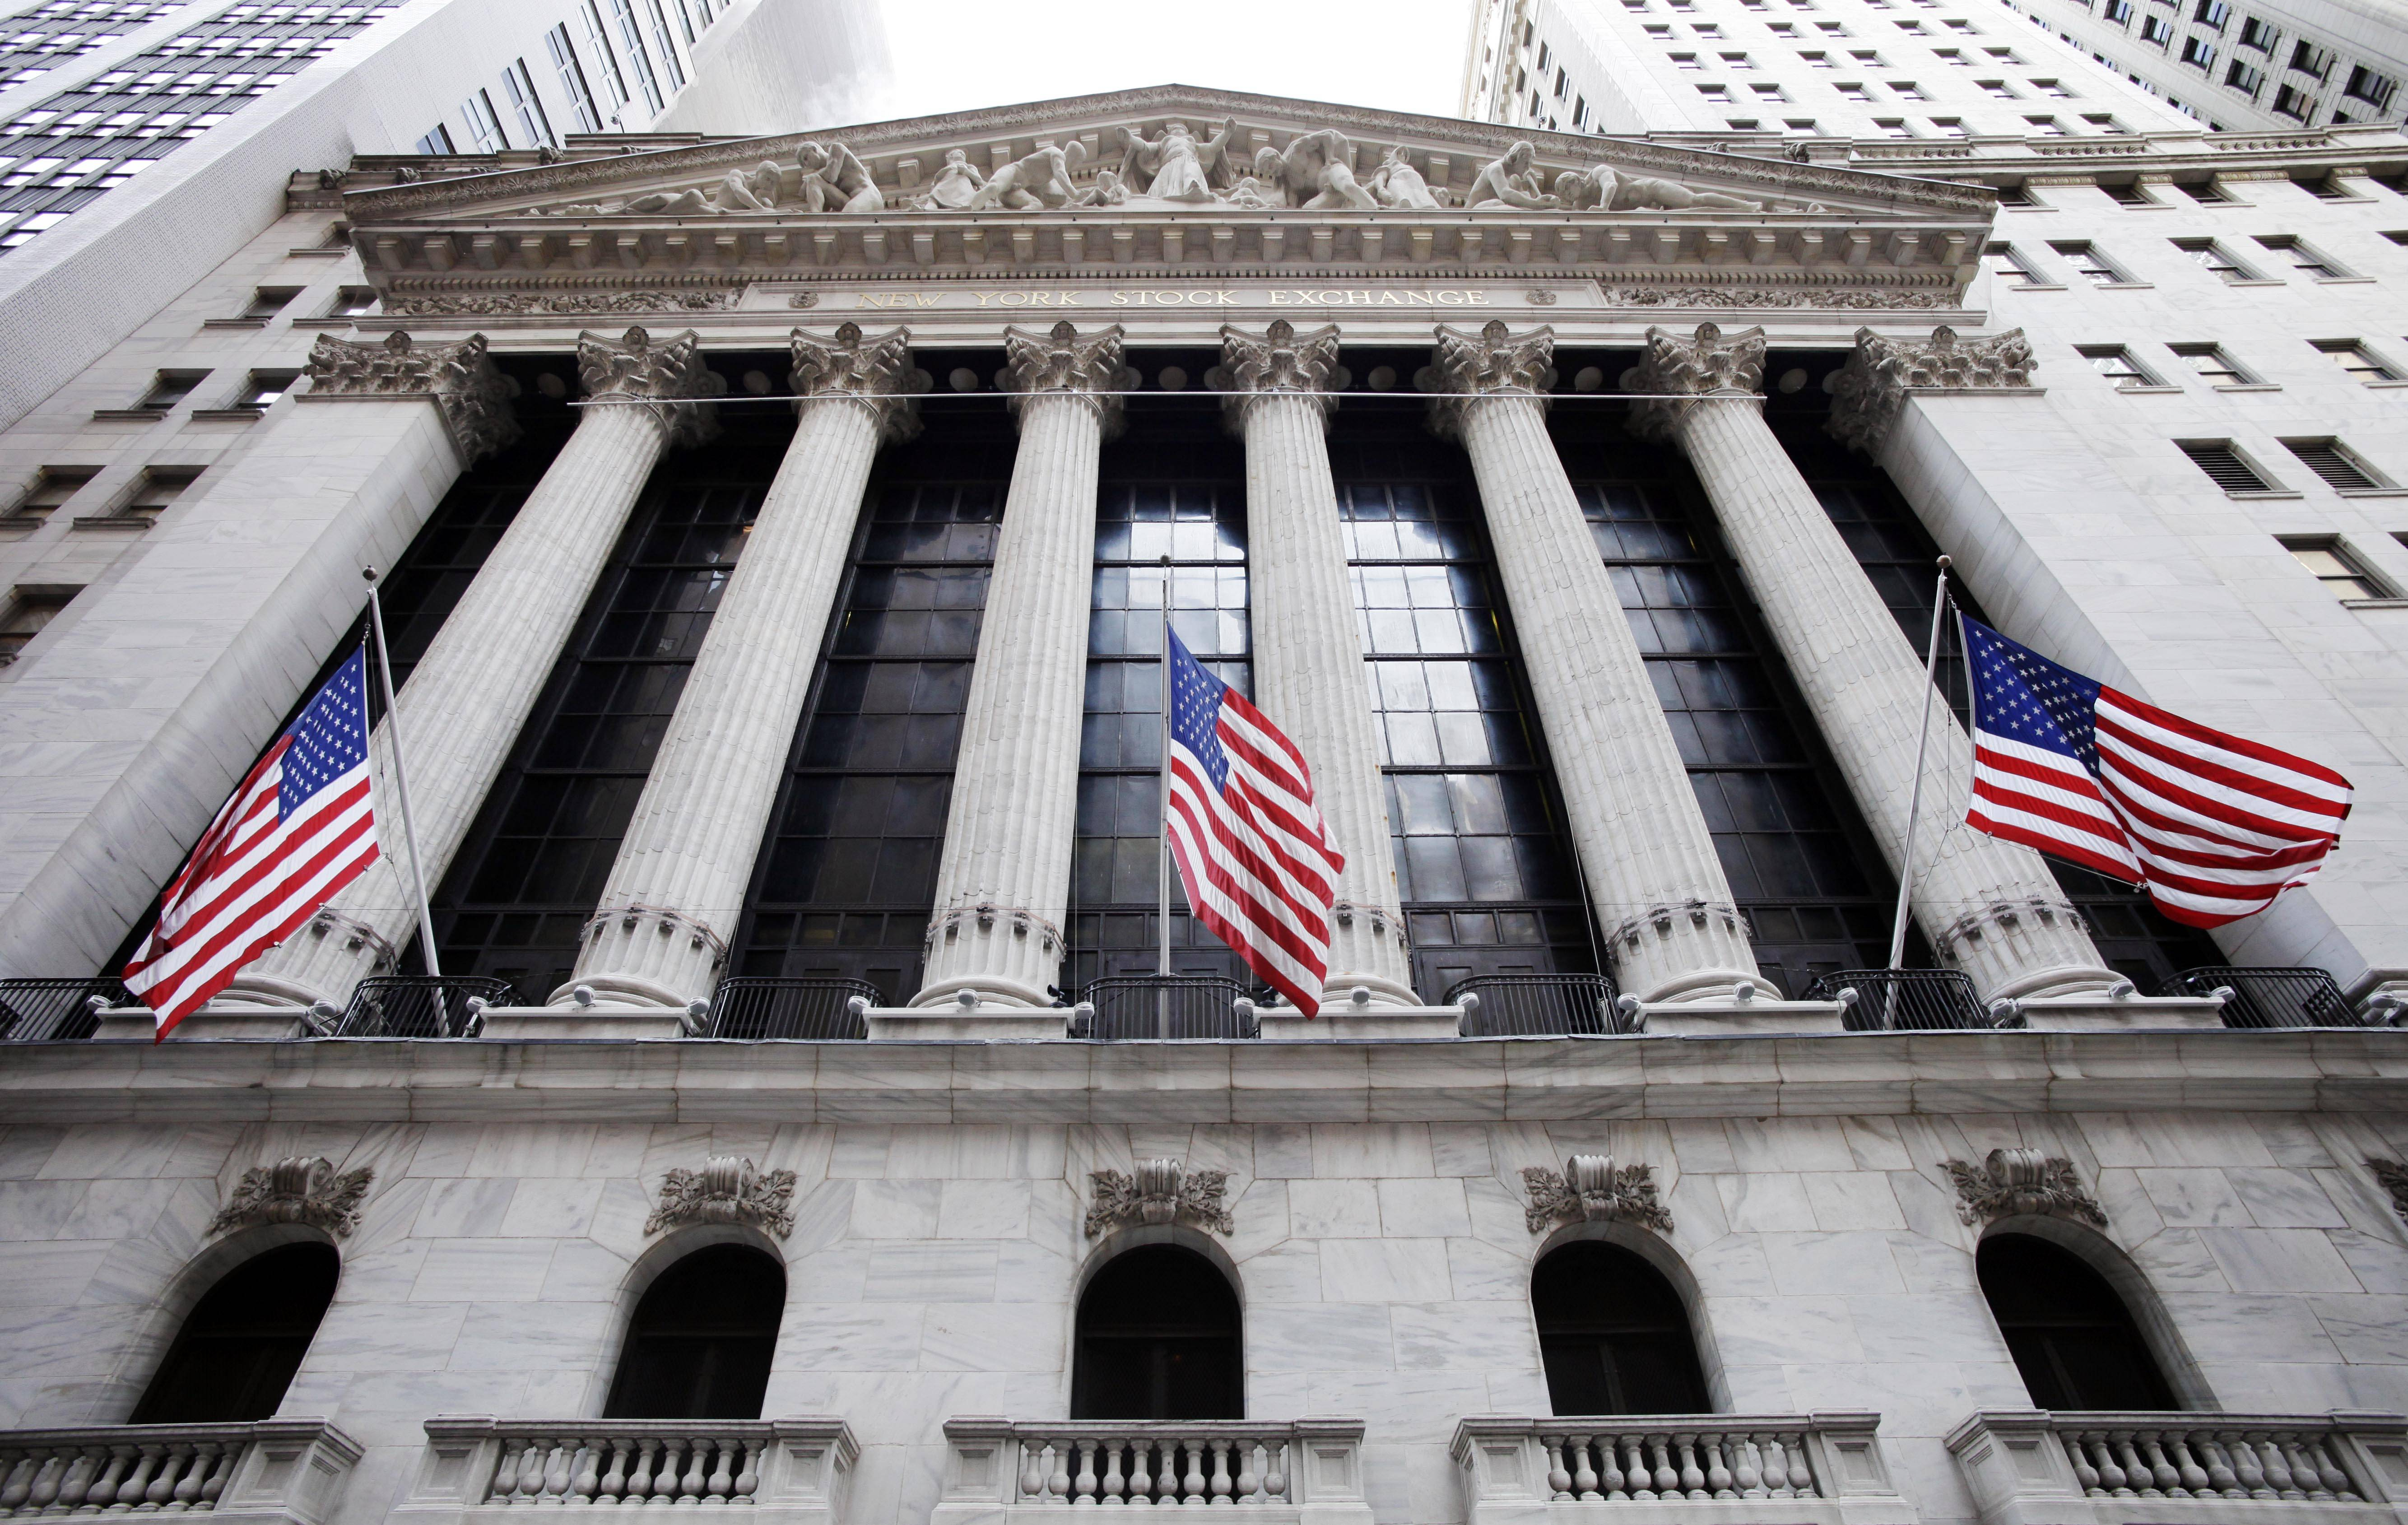 American flags fly in front of the New York Stock Exchange, in New York.